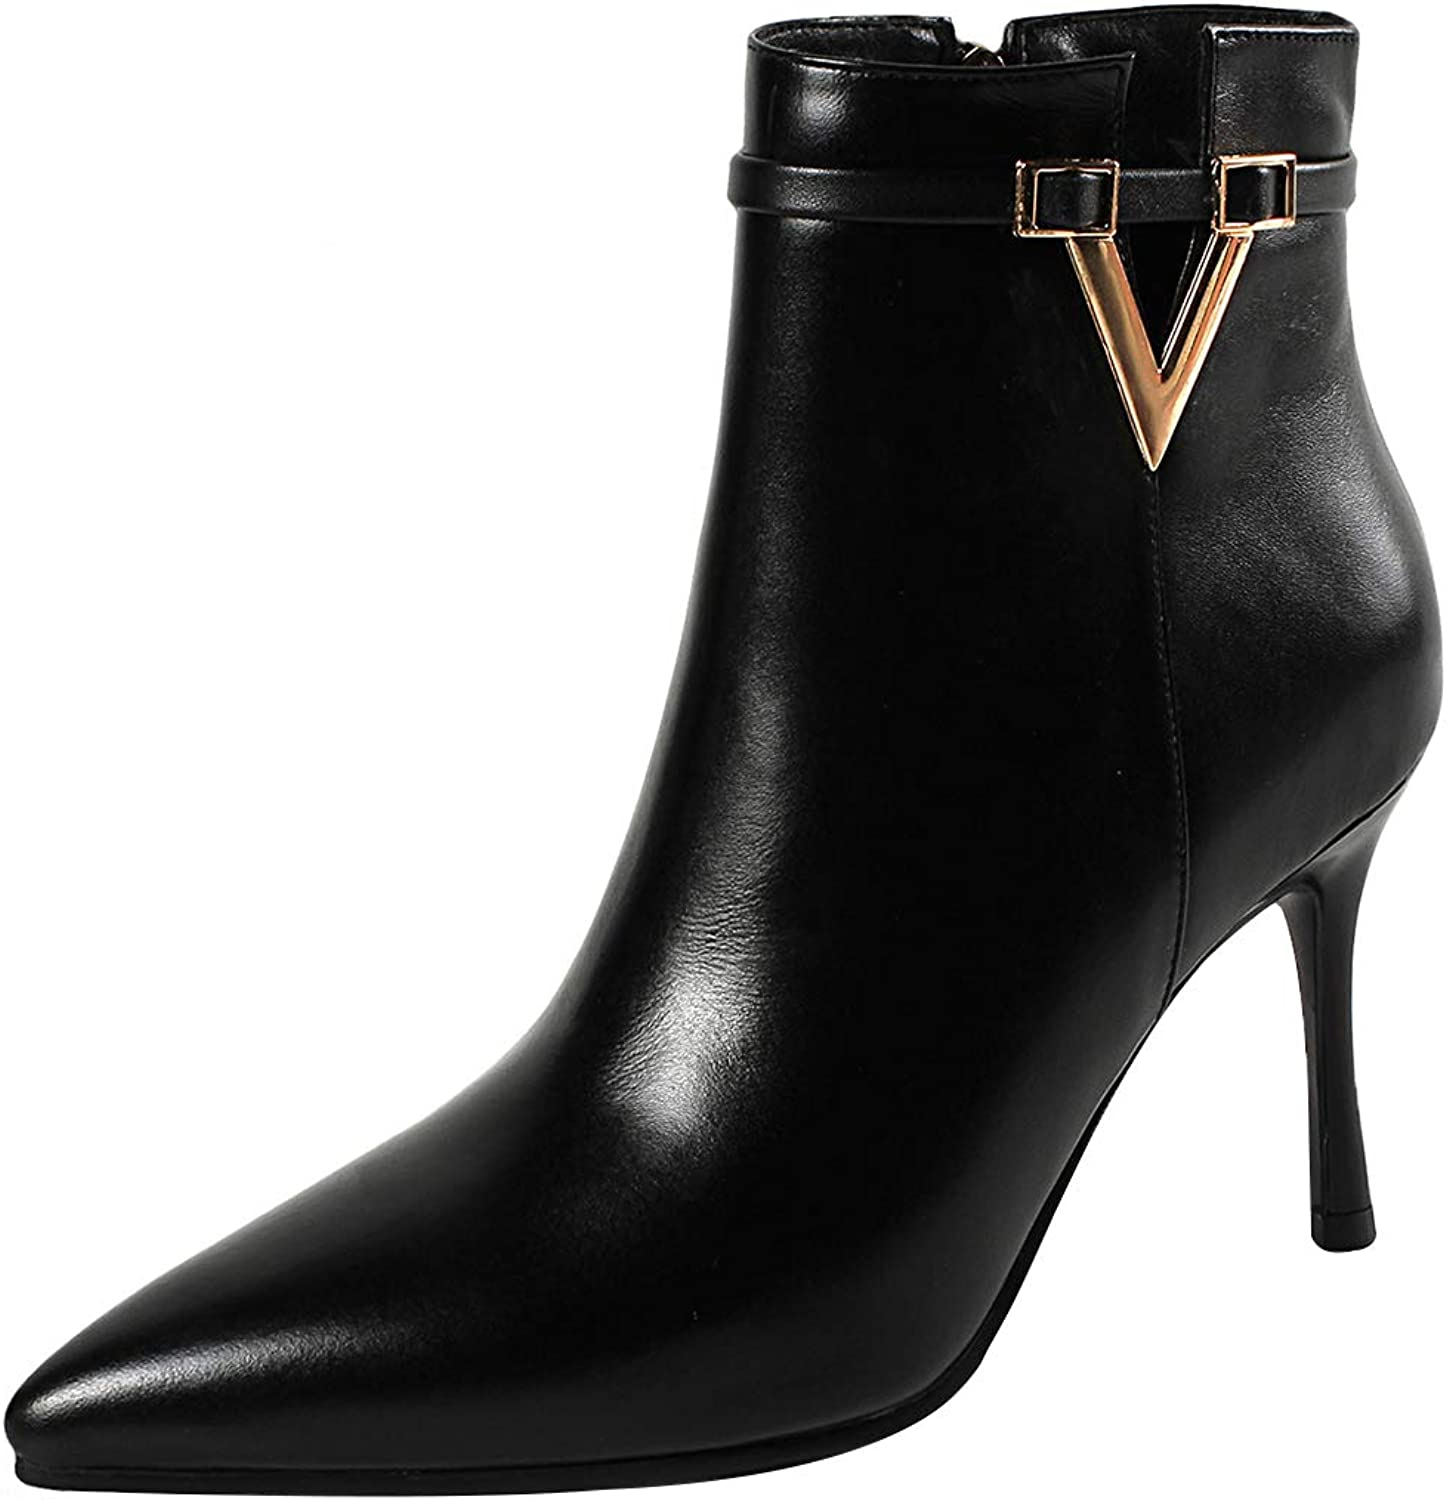 Eithy Women's Shaboa Stiletto Ankle-high Zipper Leather Boots